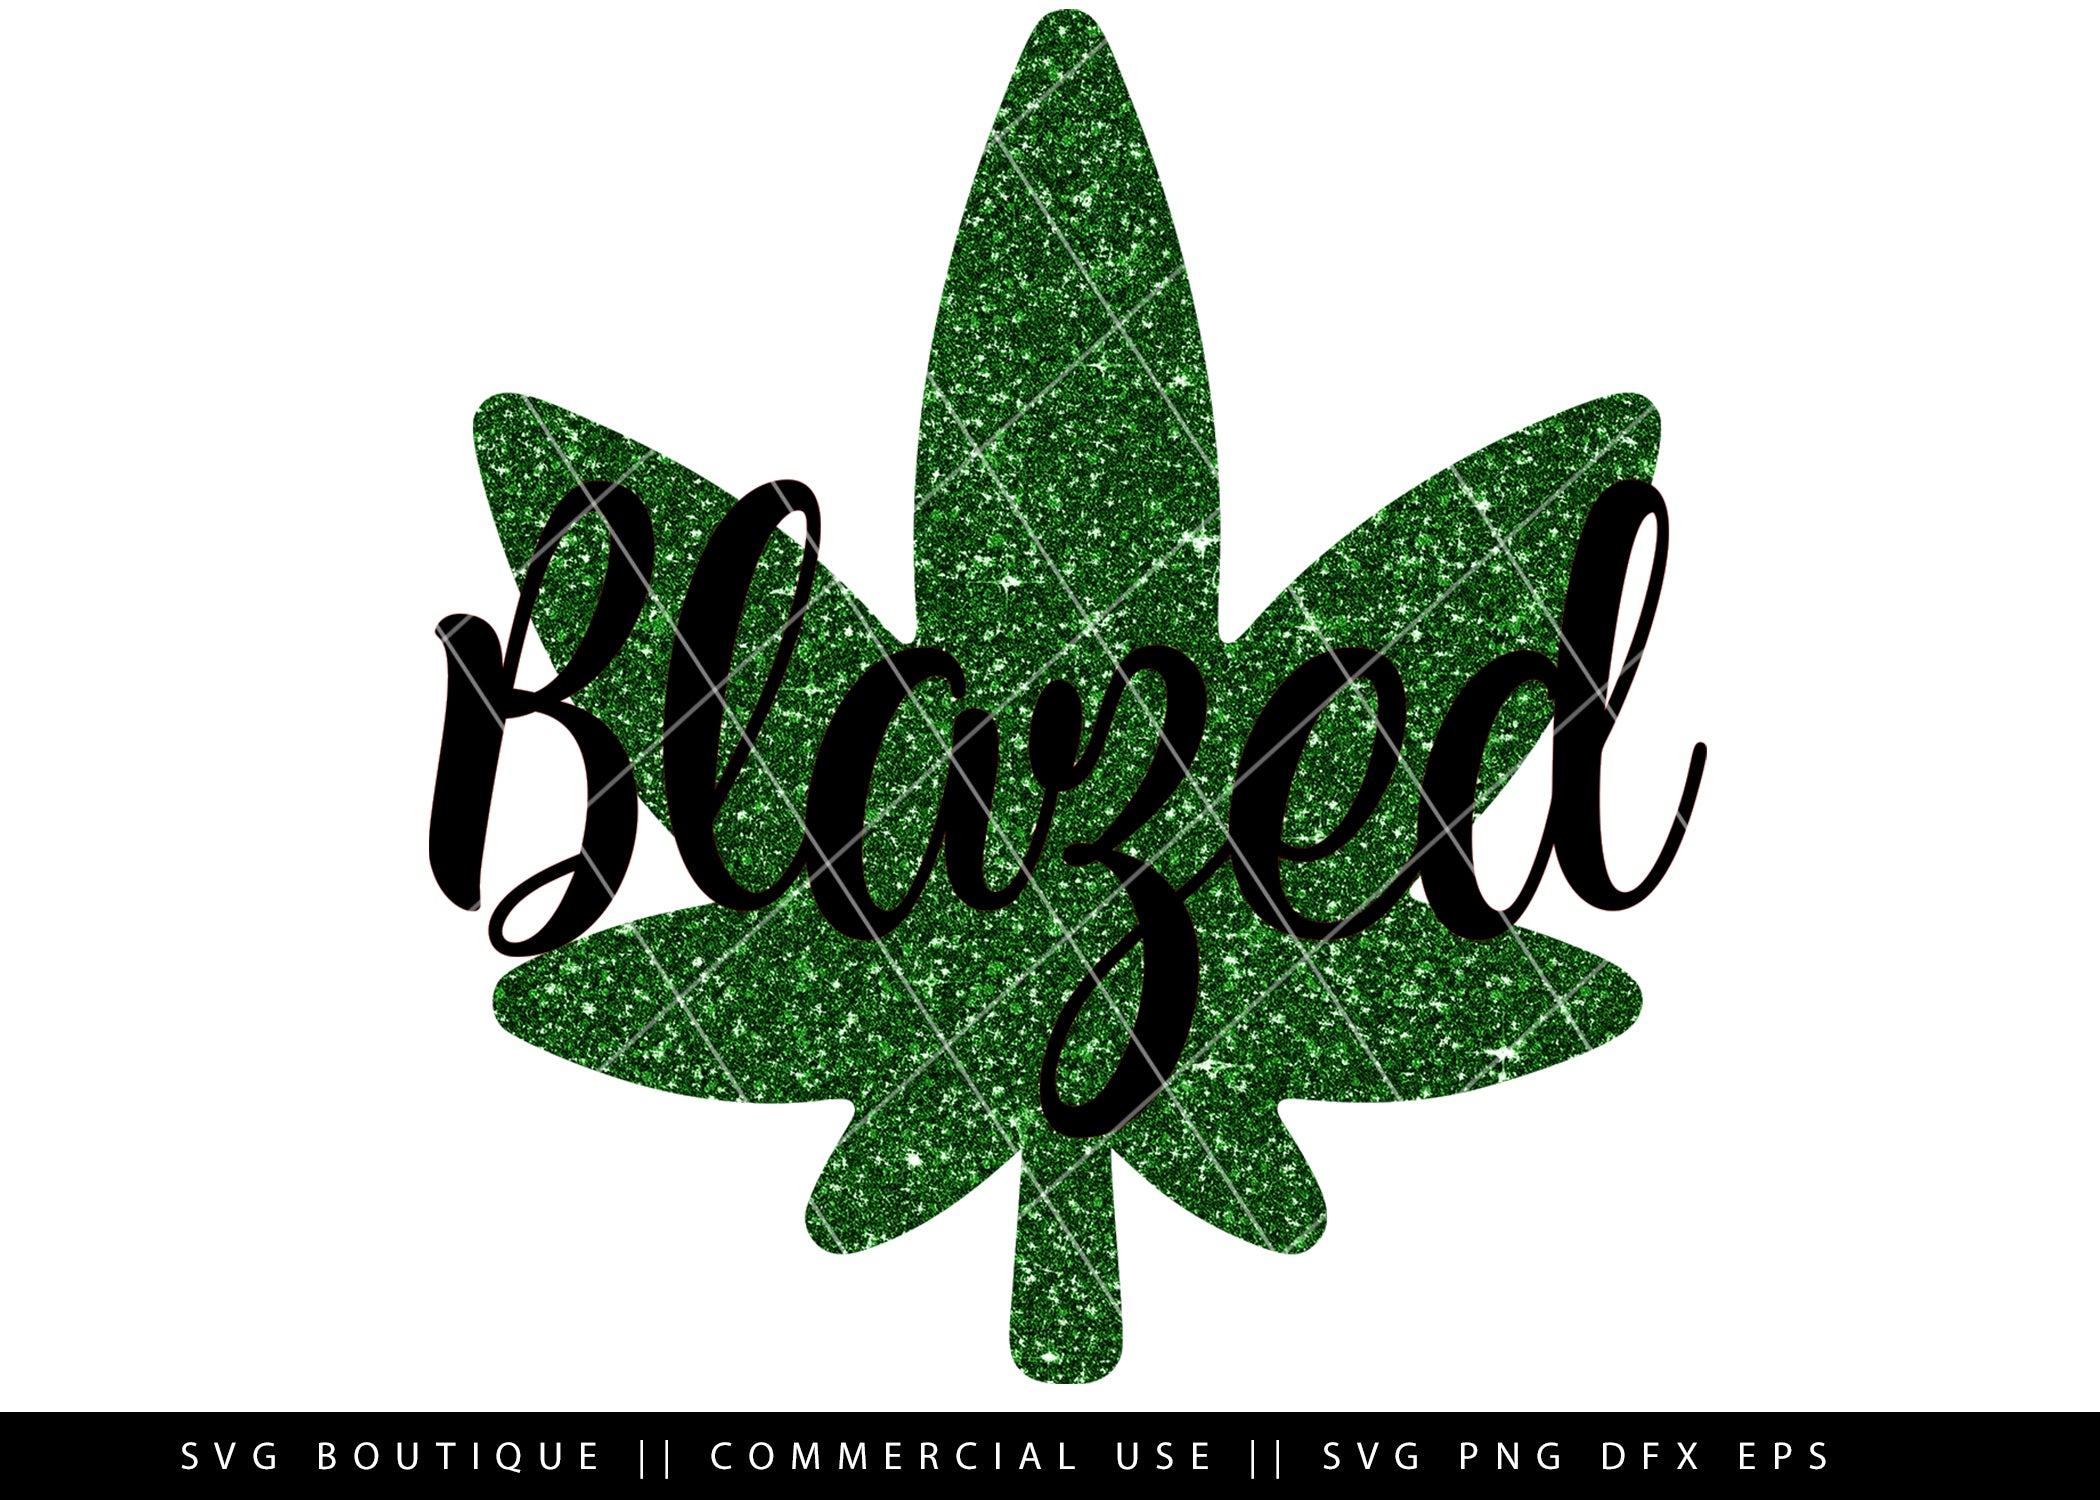 Blazed Weed Dope Svg Files Cut File For Silhouette And Cricut Cutt Svg Boutique